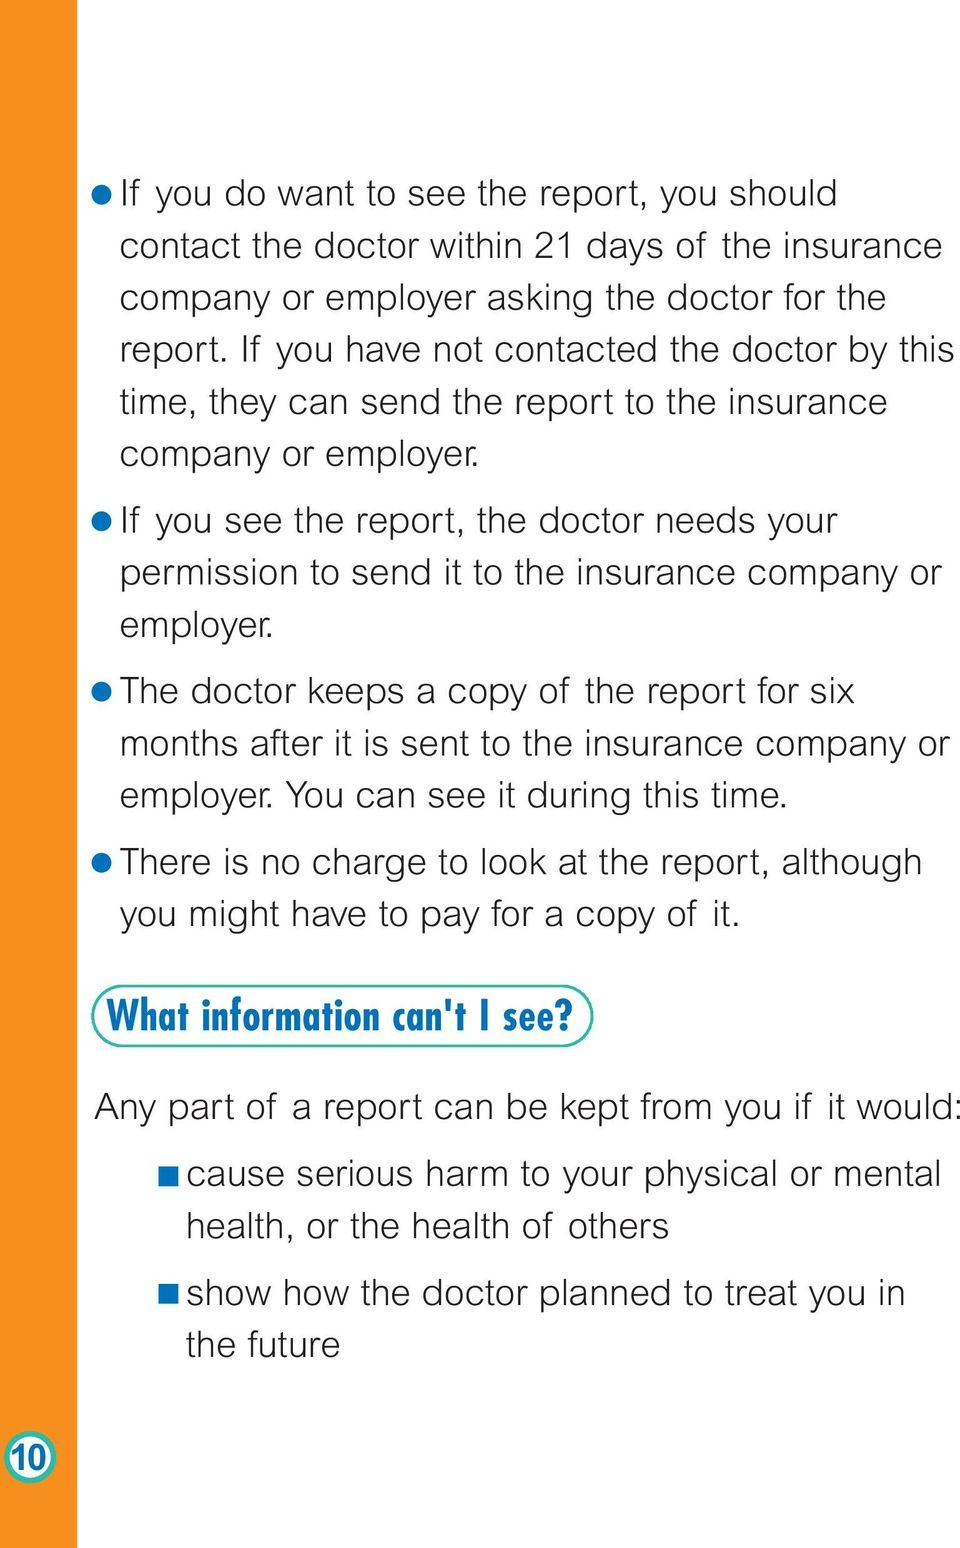 If you see the report, the doctor needs your permission to send it to the insurance company or employer.